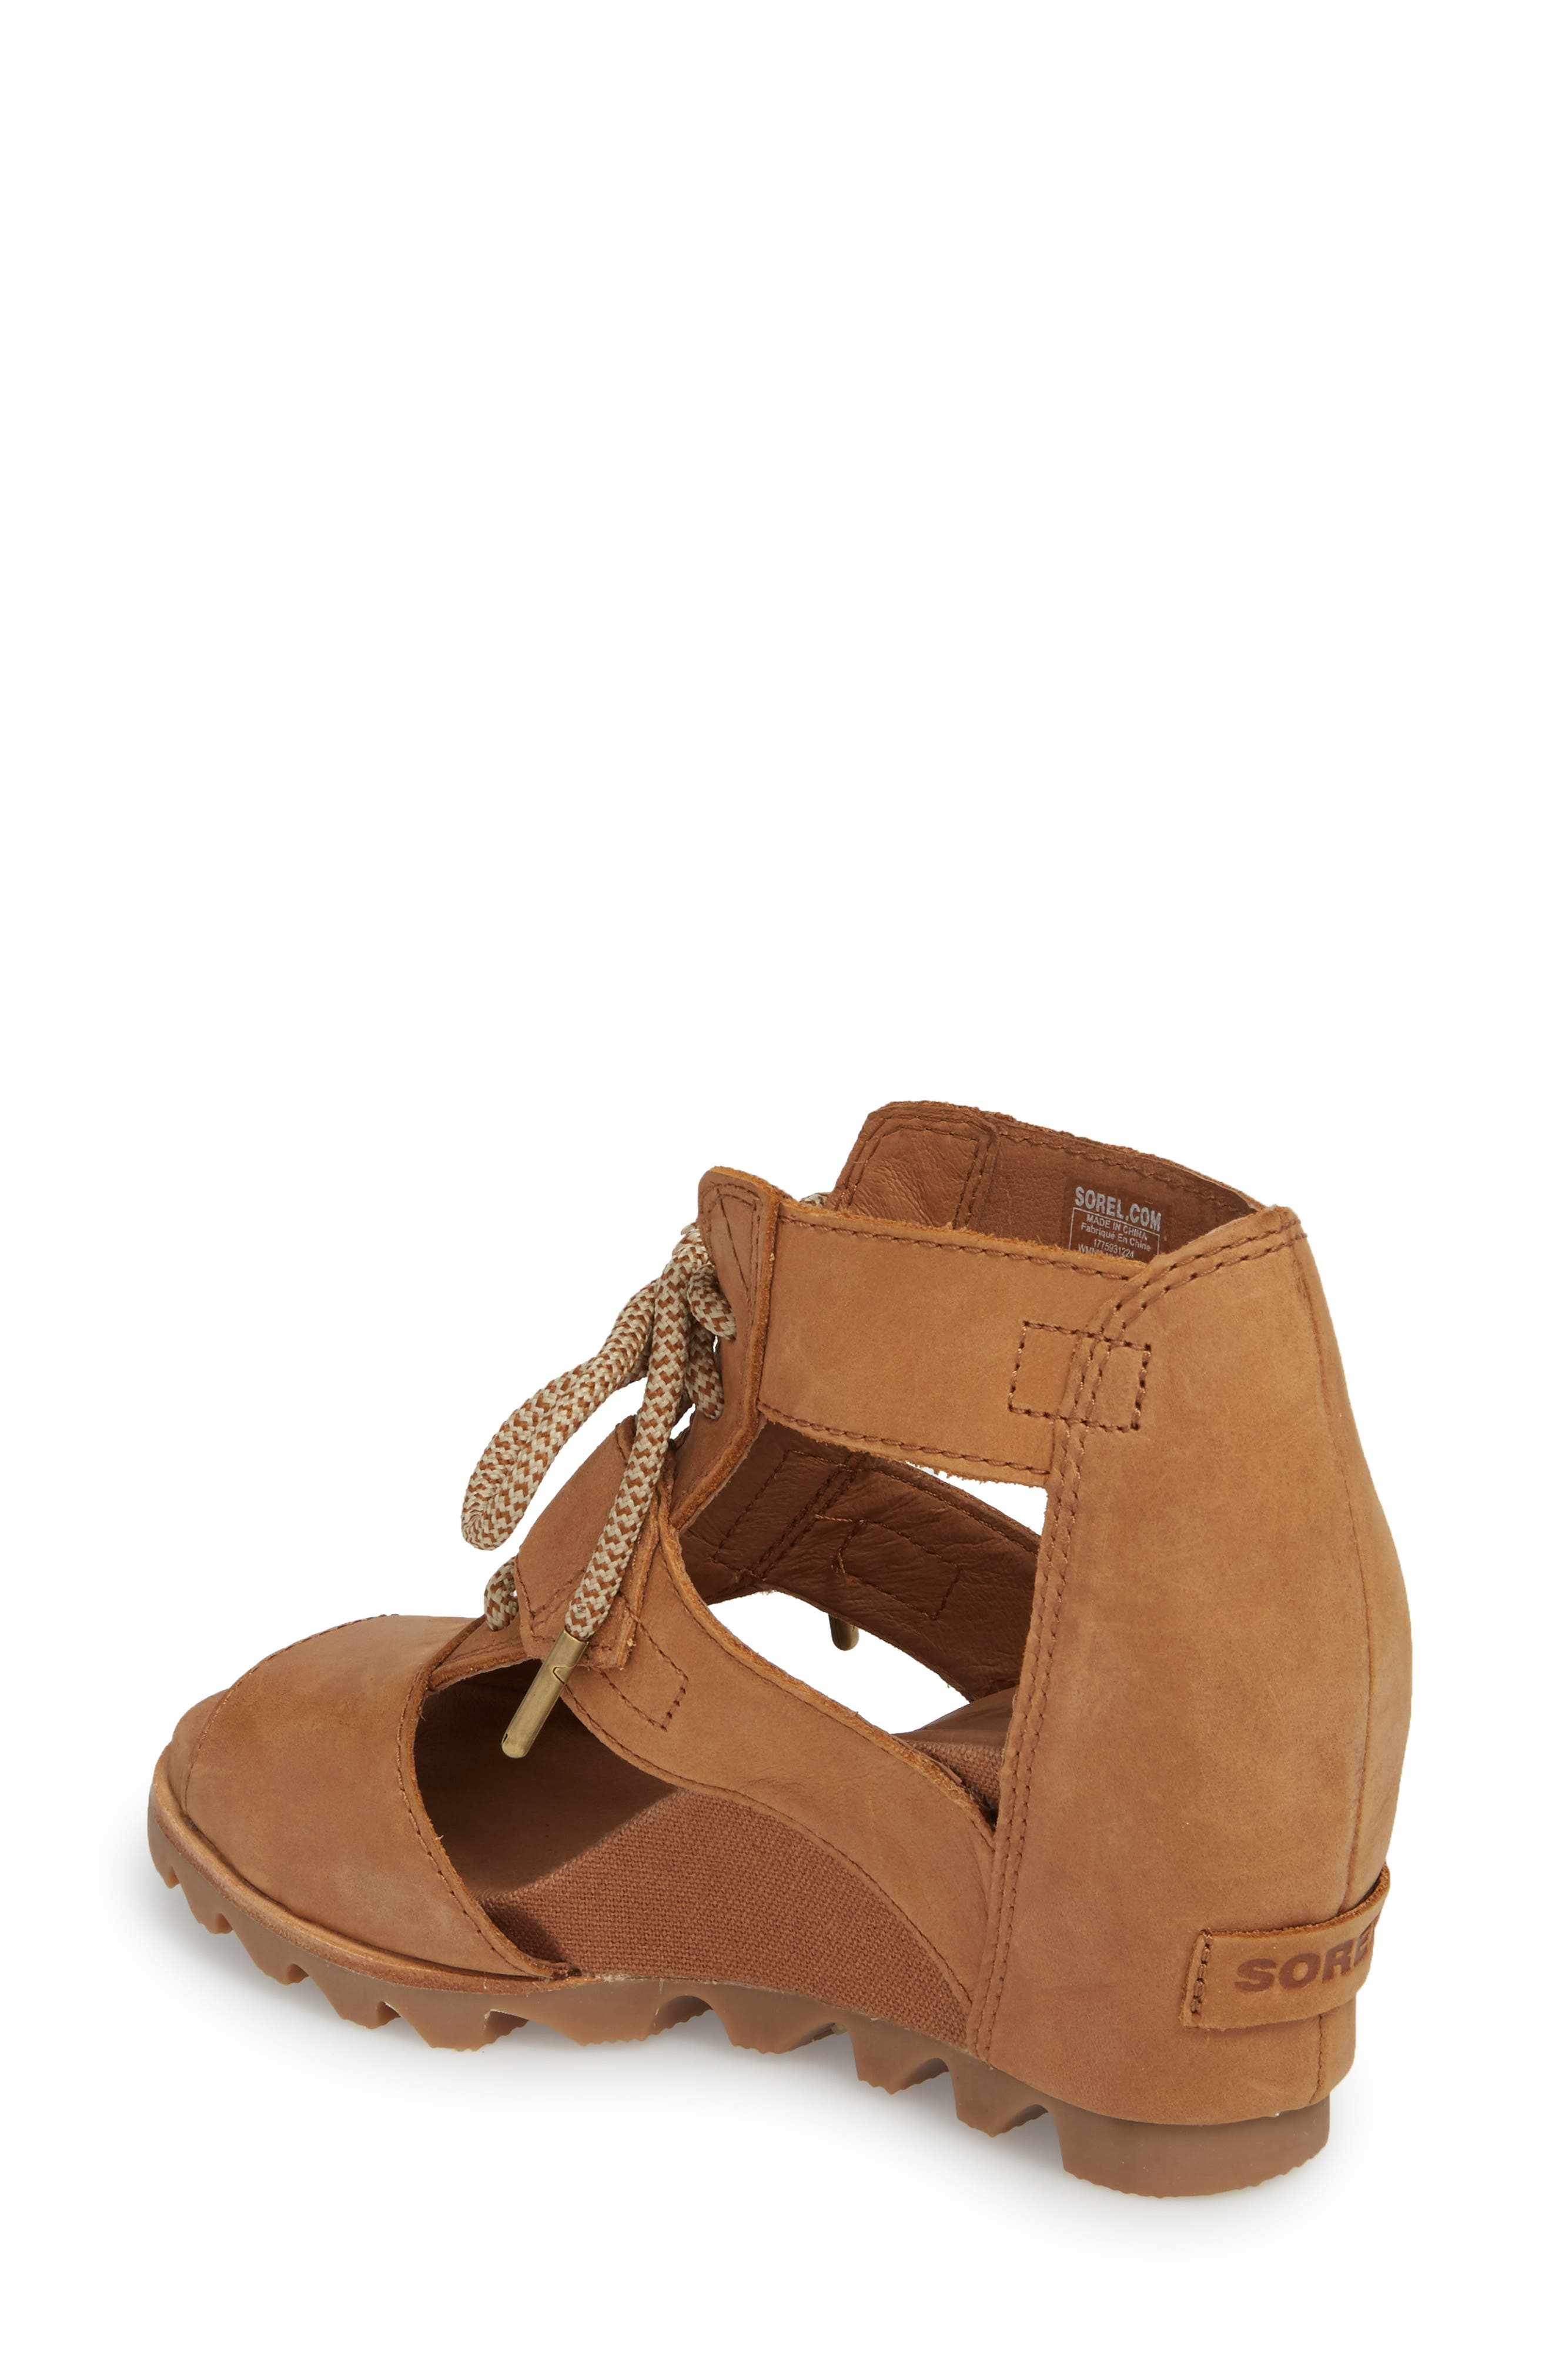 'Joanie' Cage Sandal,                             Alternate thumbnail 2, color,                             Camel Brown